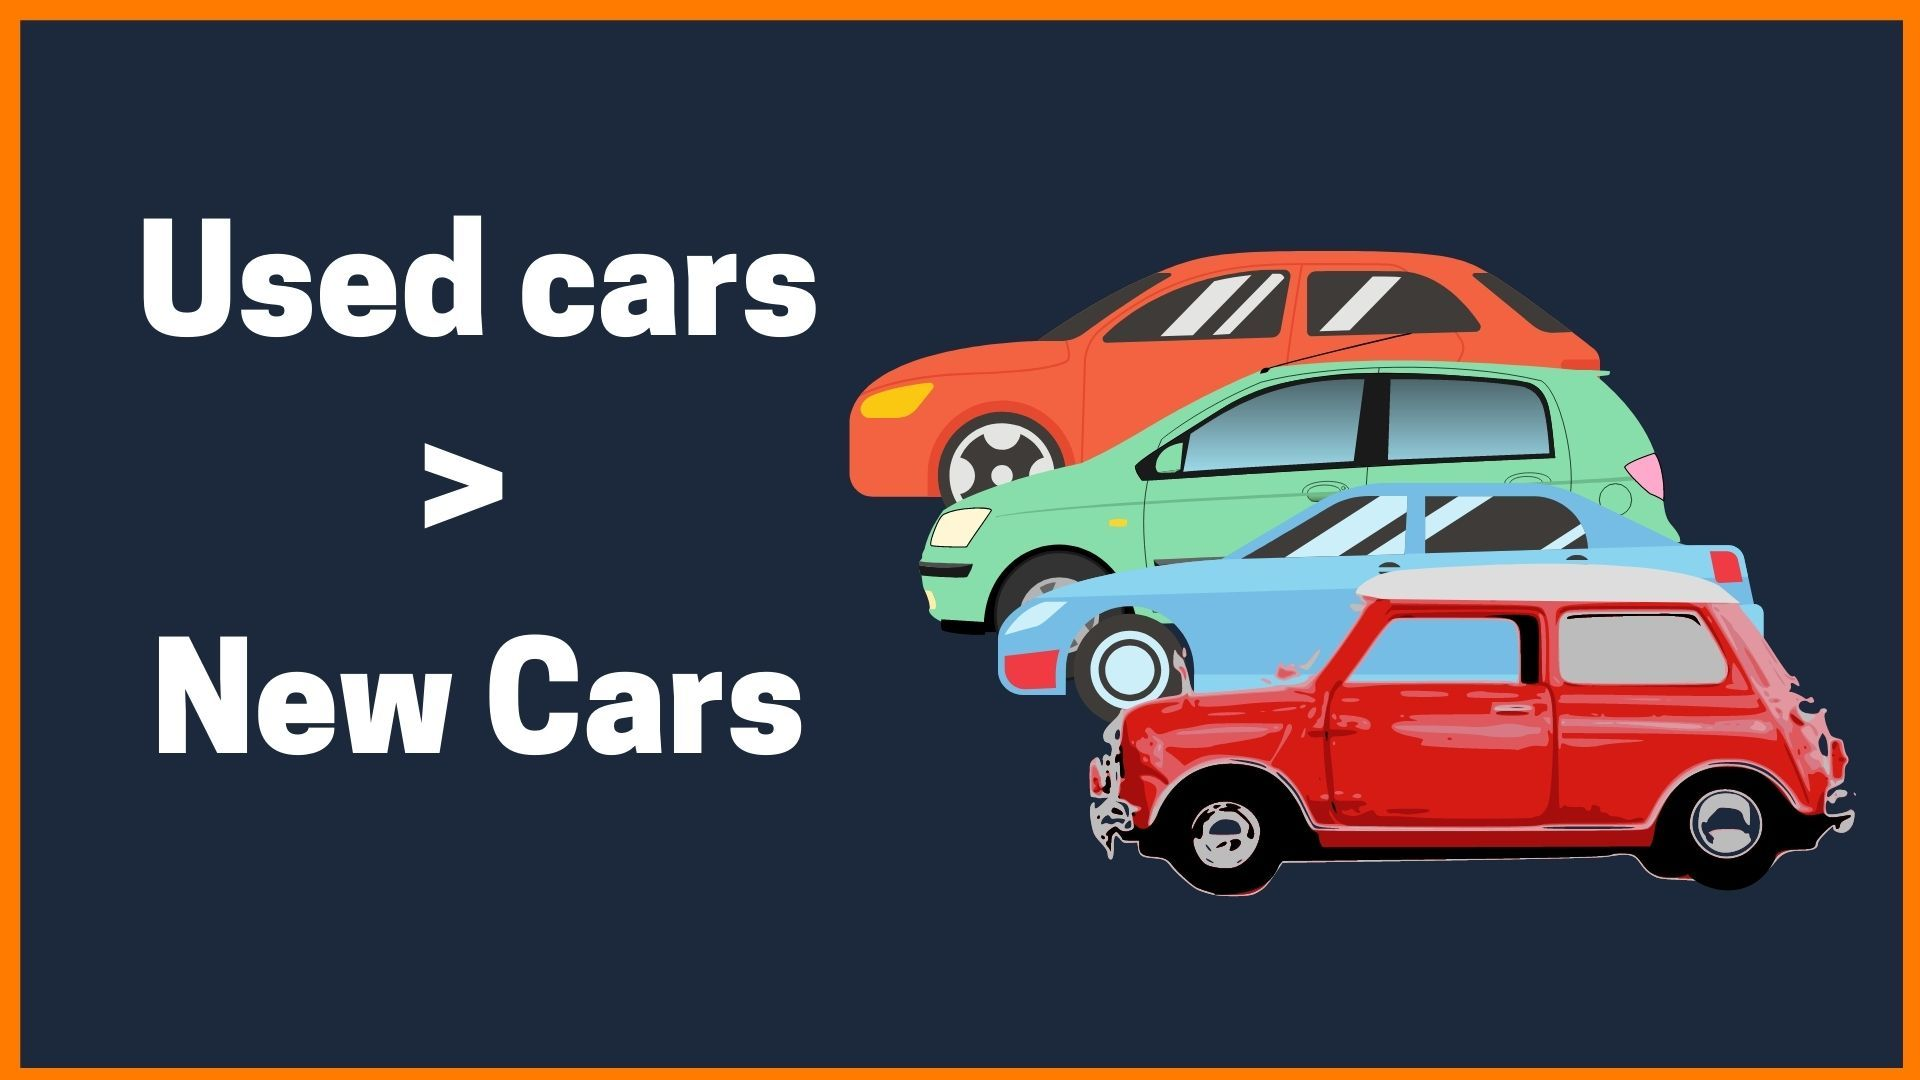 Why the demand for used cars is increasing?